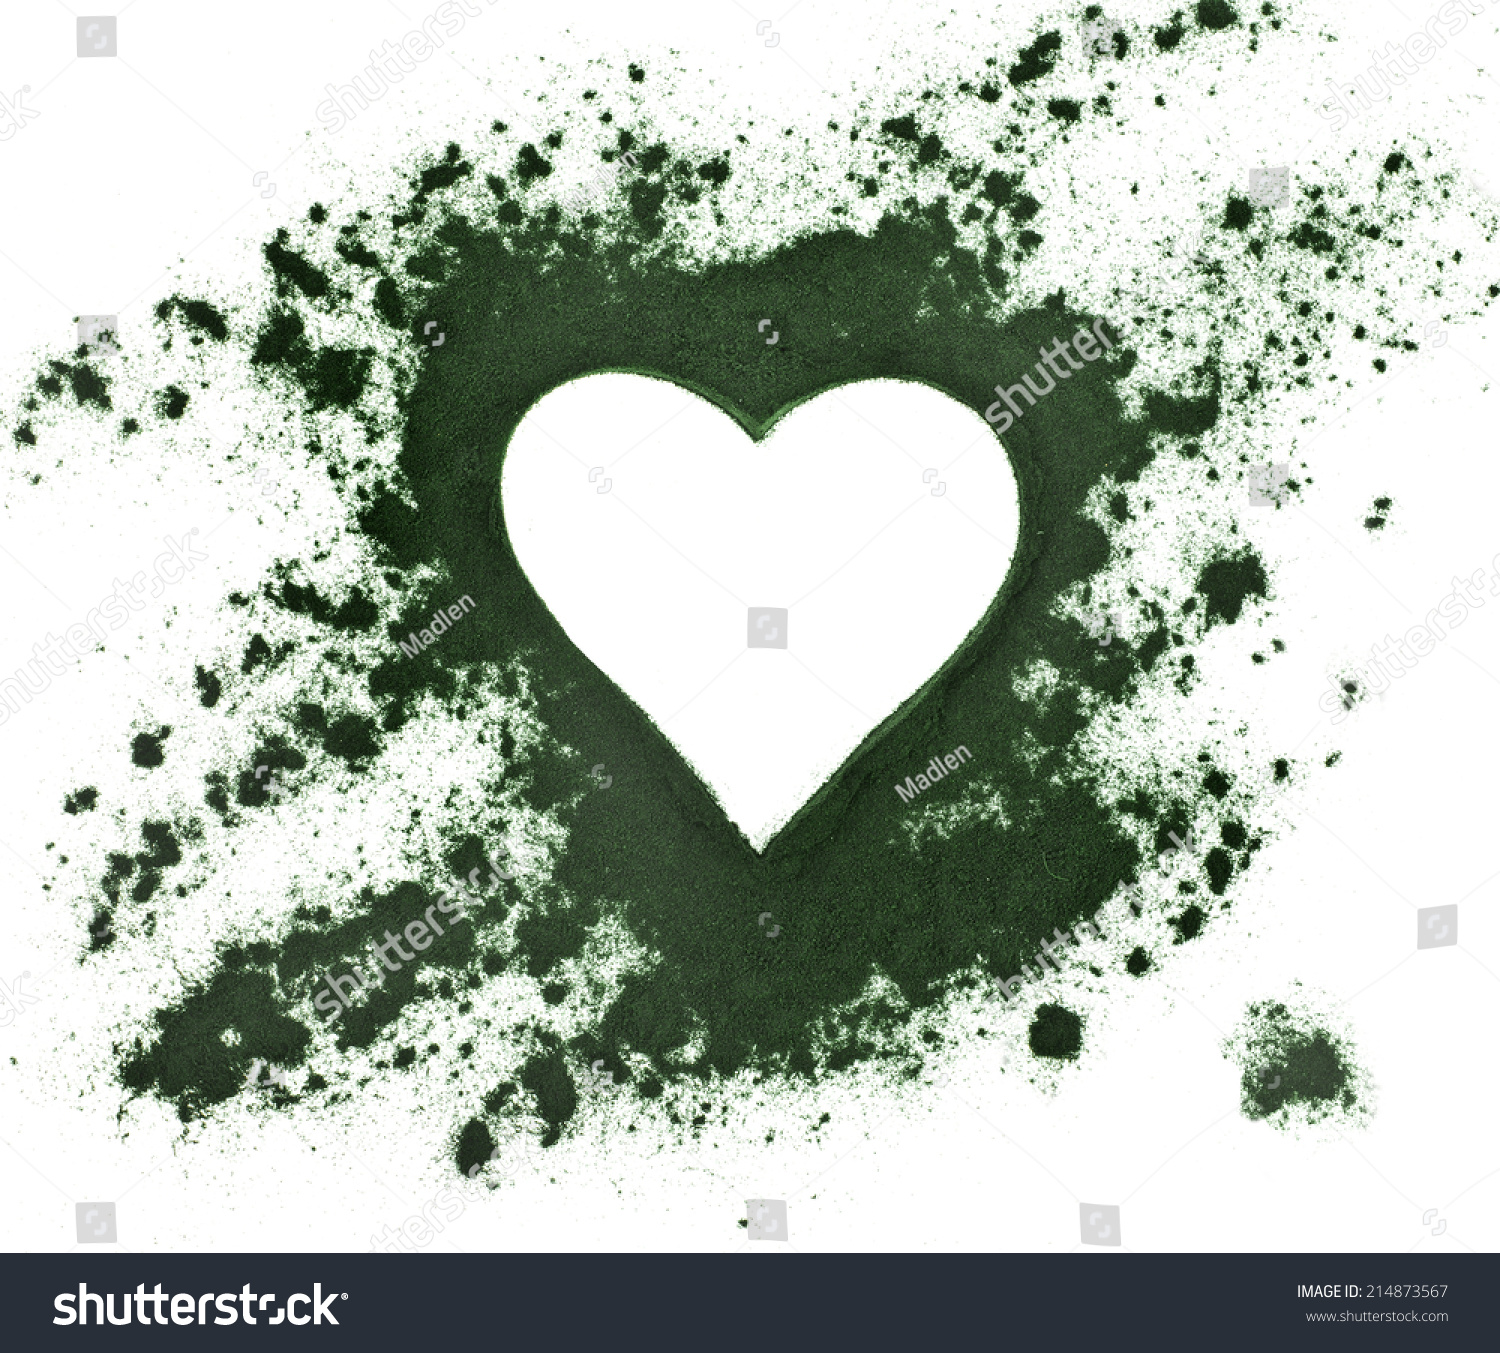 Spirulina Powder Algae Nutritional Supplement Shape Stock Photo Algea Top Black Heart Surface View Isolated On White